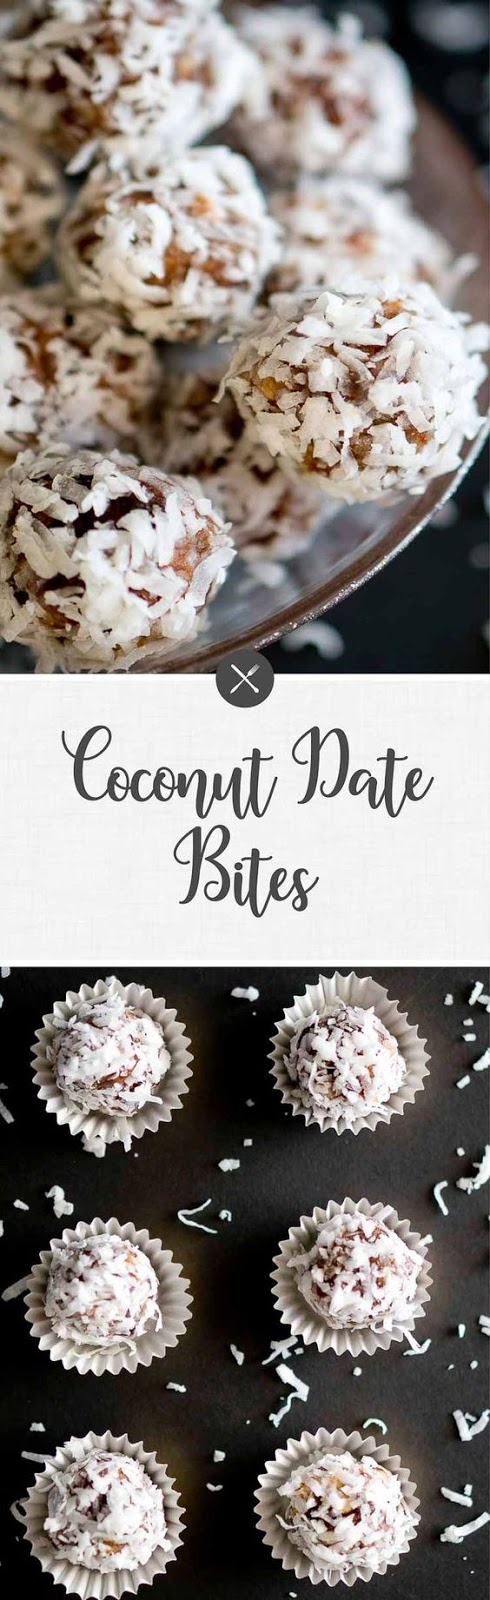 No Bake Coconut Date Bites